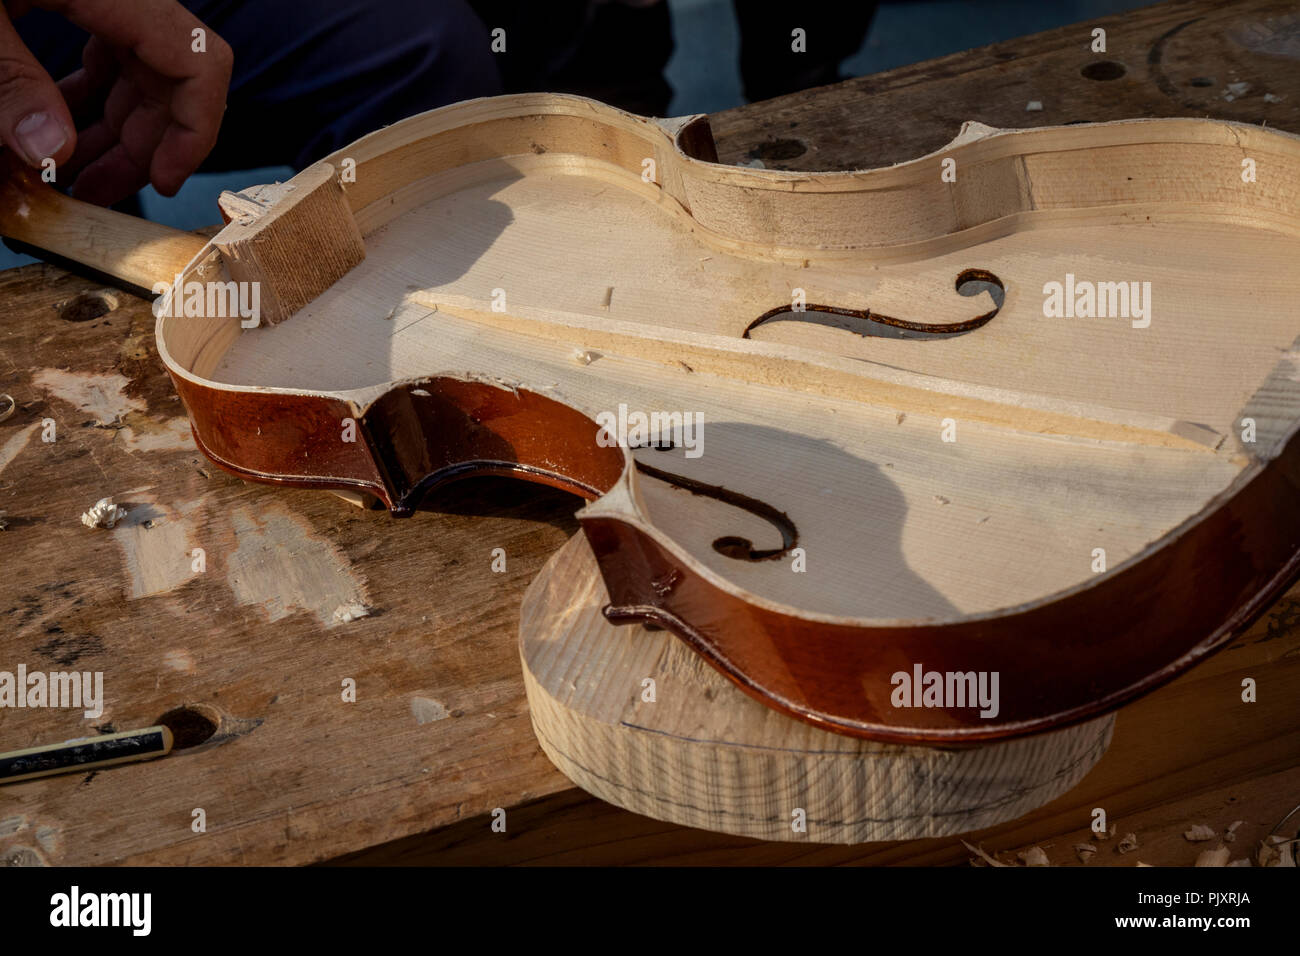 A master makes a musical violin instrument - Stock Image